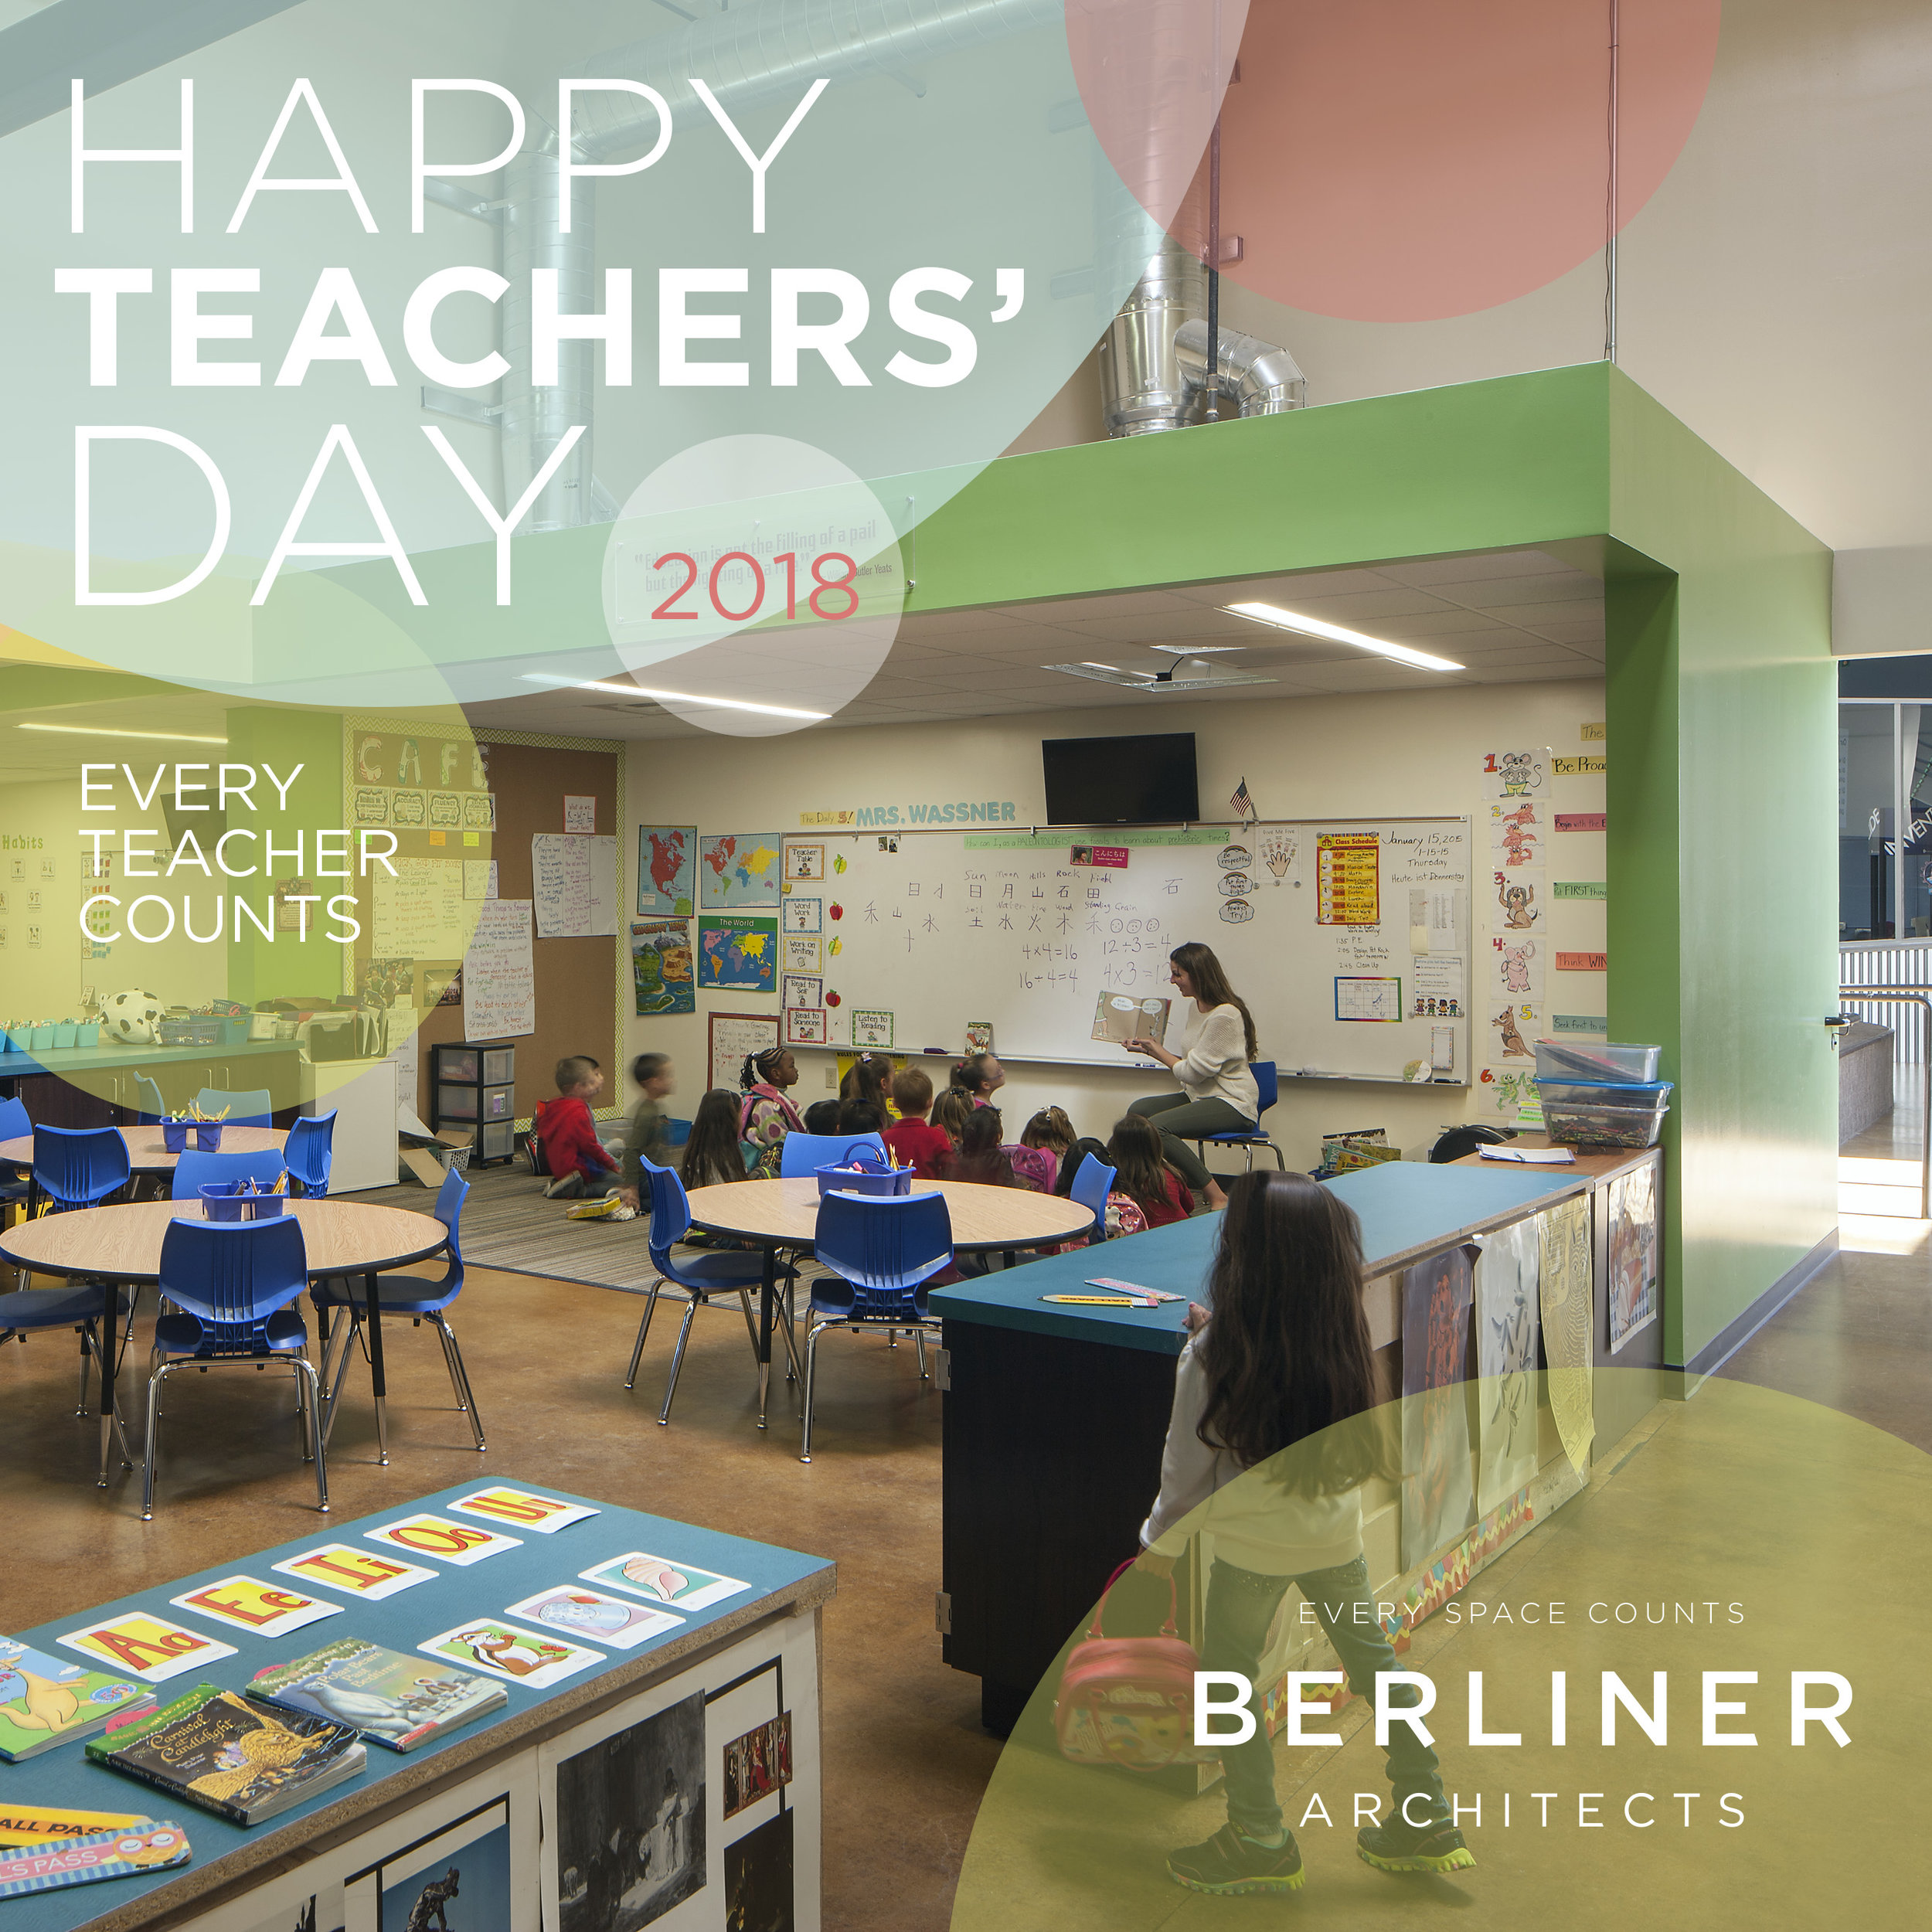 teachers_day_2018_1.jpg